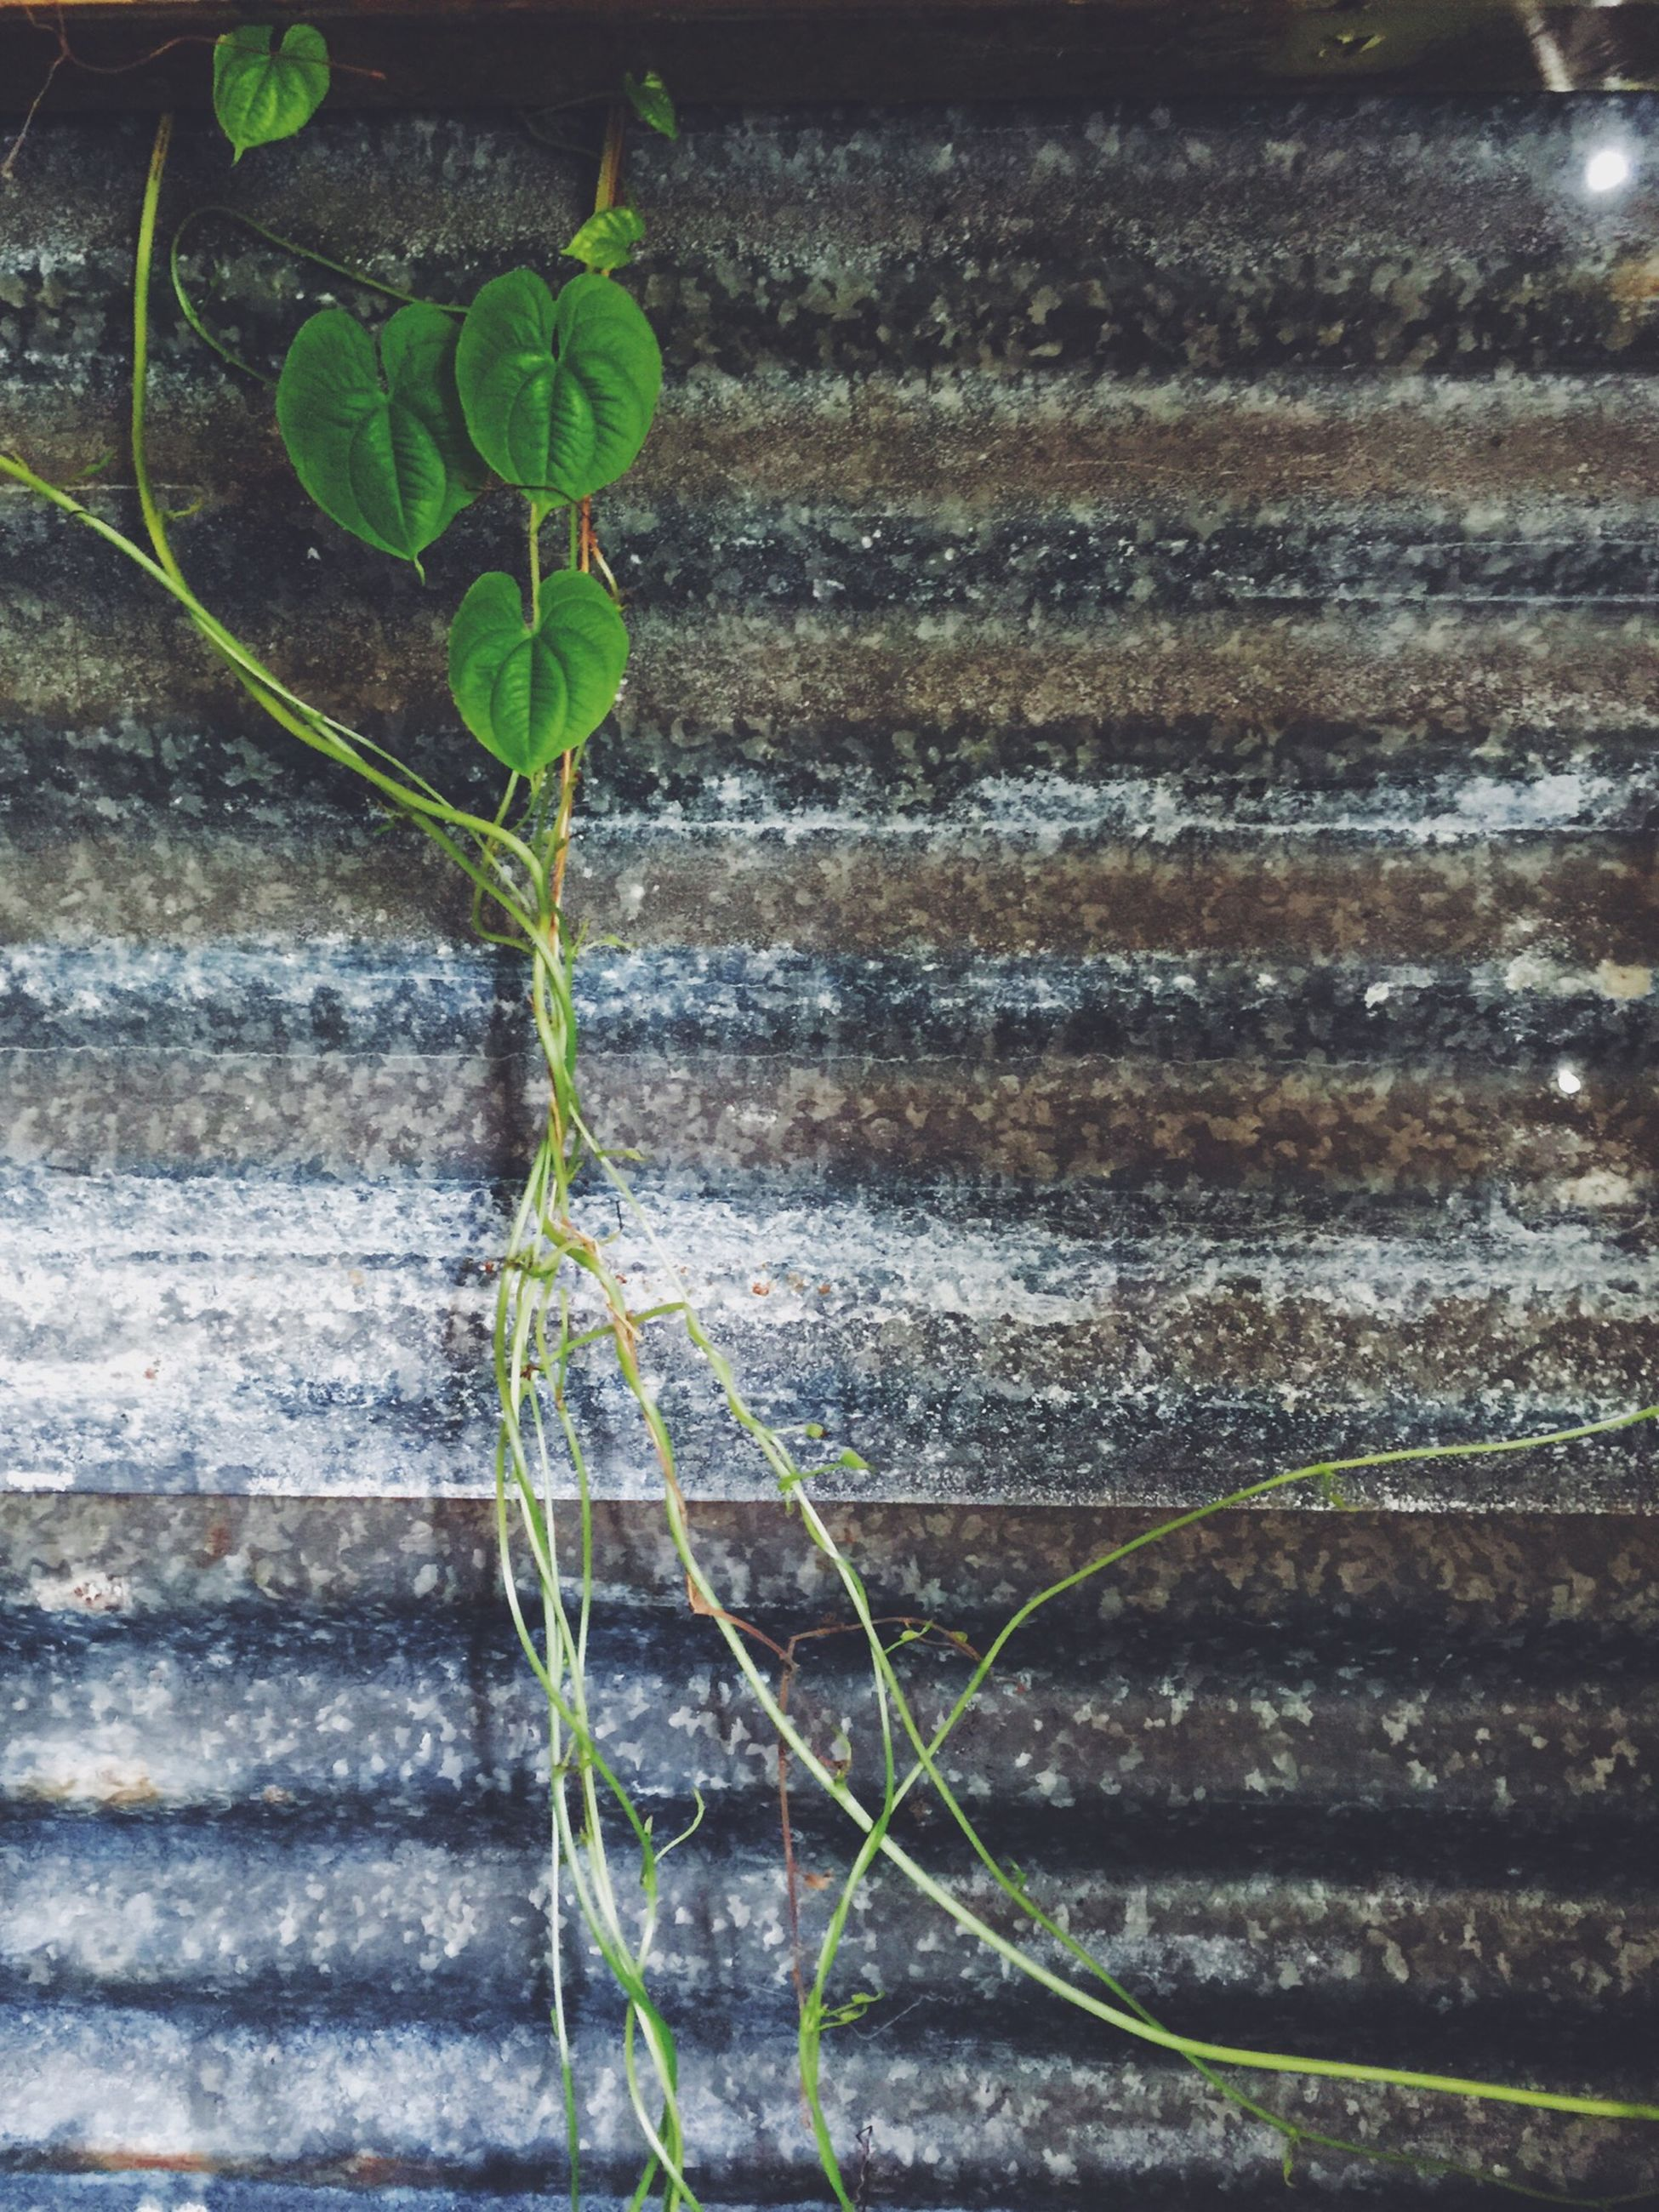 plant, leaf, growth, green color, close-up, nature, growing, outdoors, day, high angle view, no people, fragility, wood - material, sunlight, focus on foreground, freshness, selective focus, stem, wall - building feature, potted plant